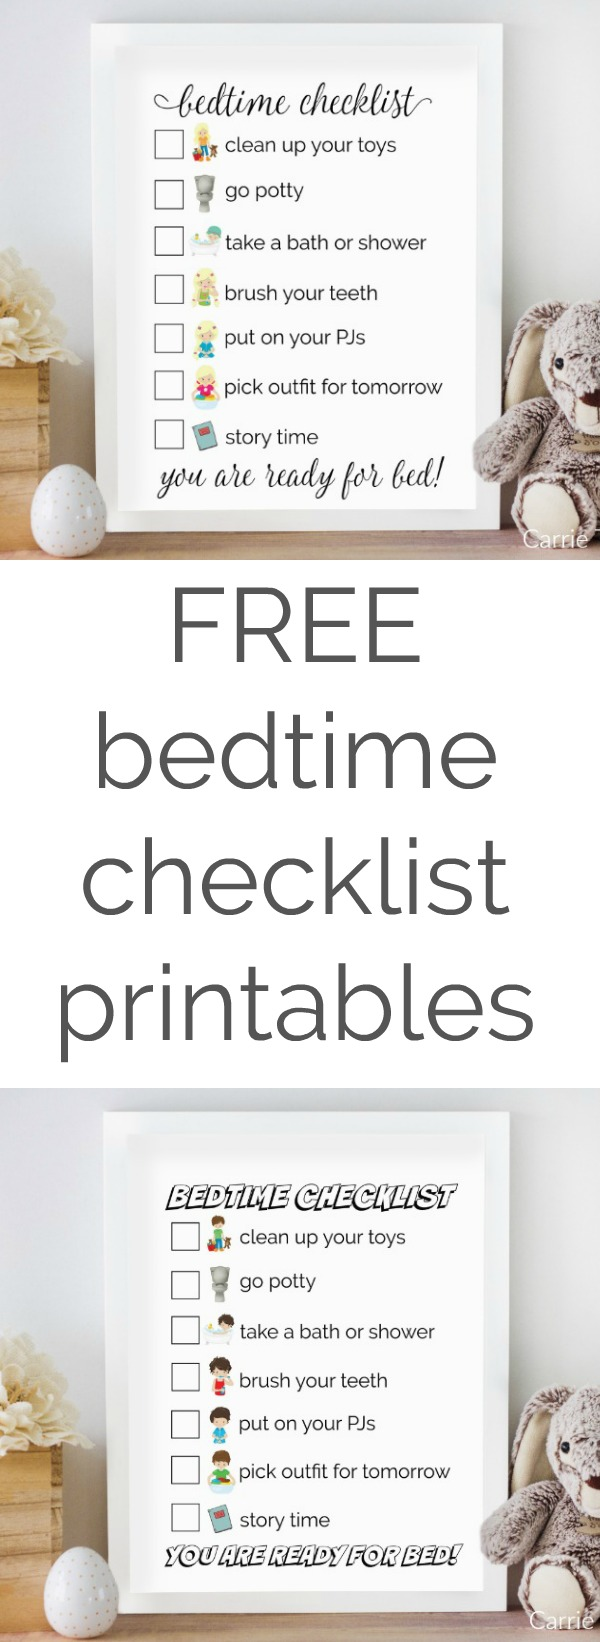 Help get your kids ready for bed without nagging them with these FREE bedtime checklist printables from CarrieThisHome.com